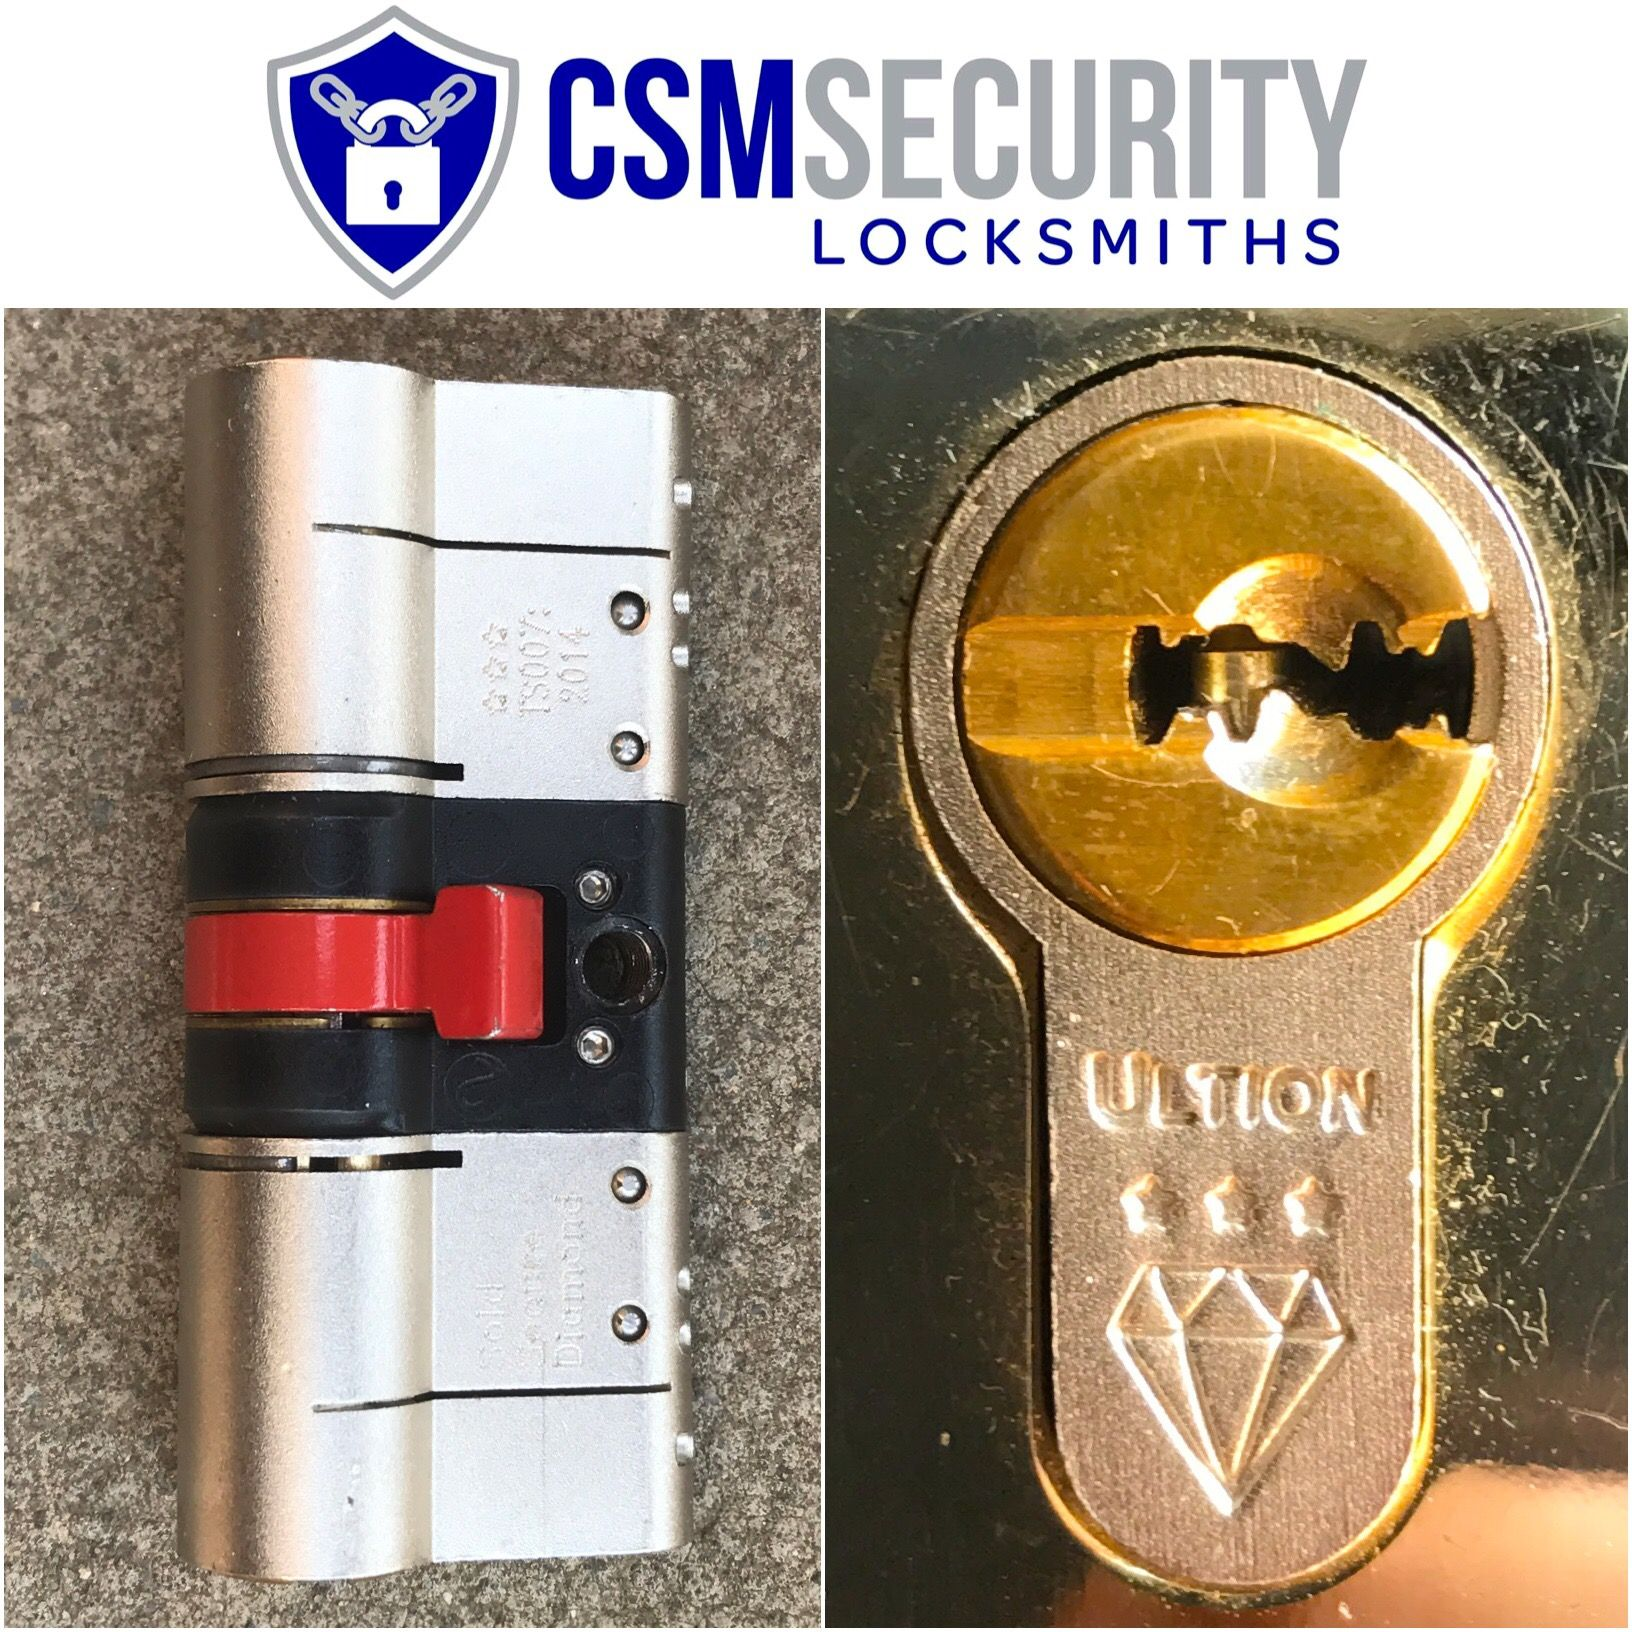 Ultion Is Our High Security Lock Of Choice The Ultion Lock Comes With A 1 000 Guarantee Police Ap High Security Locks Locksmith Services 24 Hour Locksmith